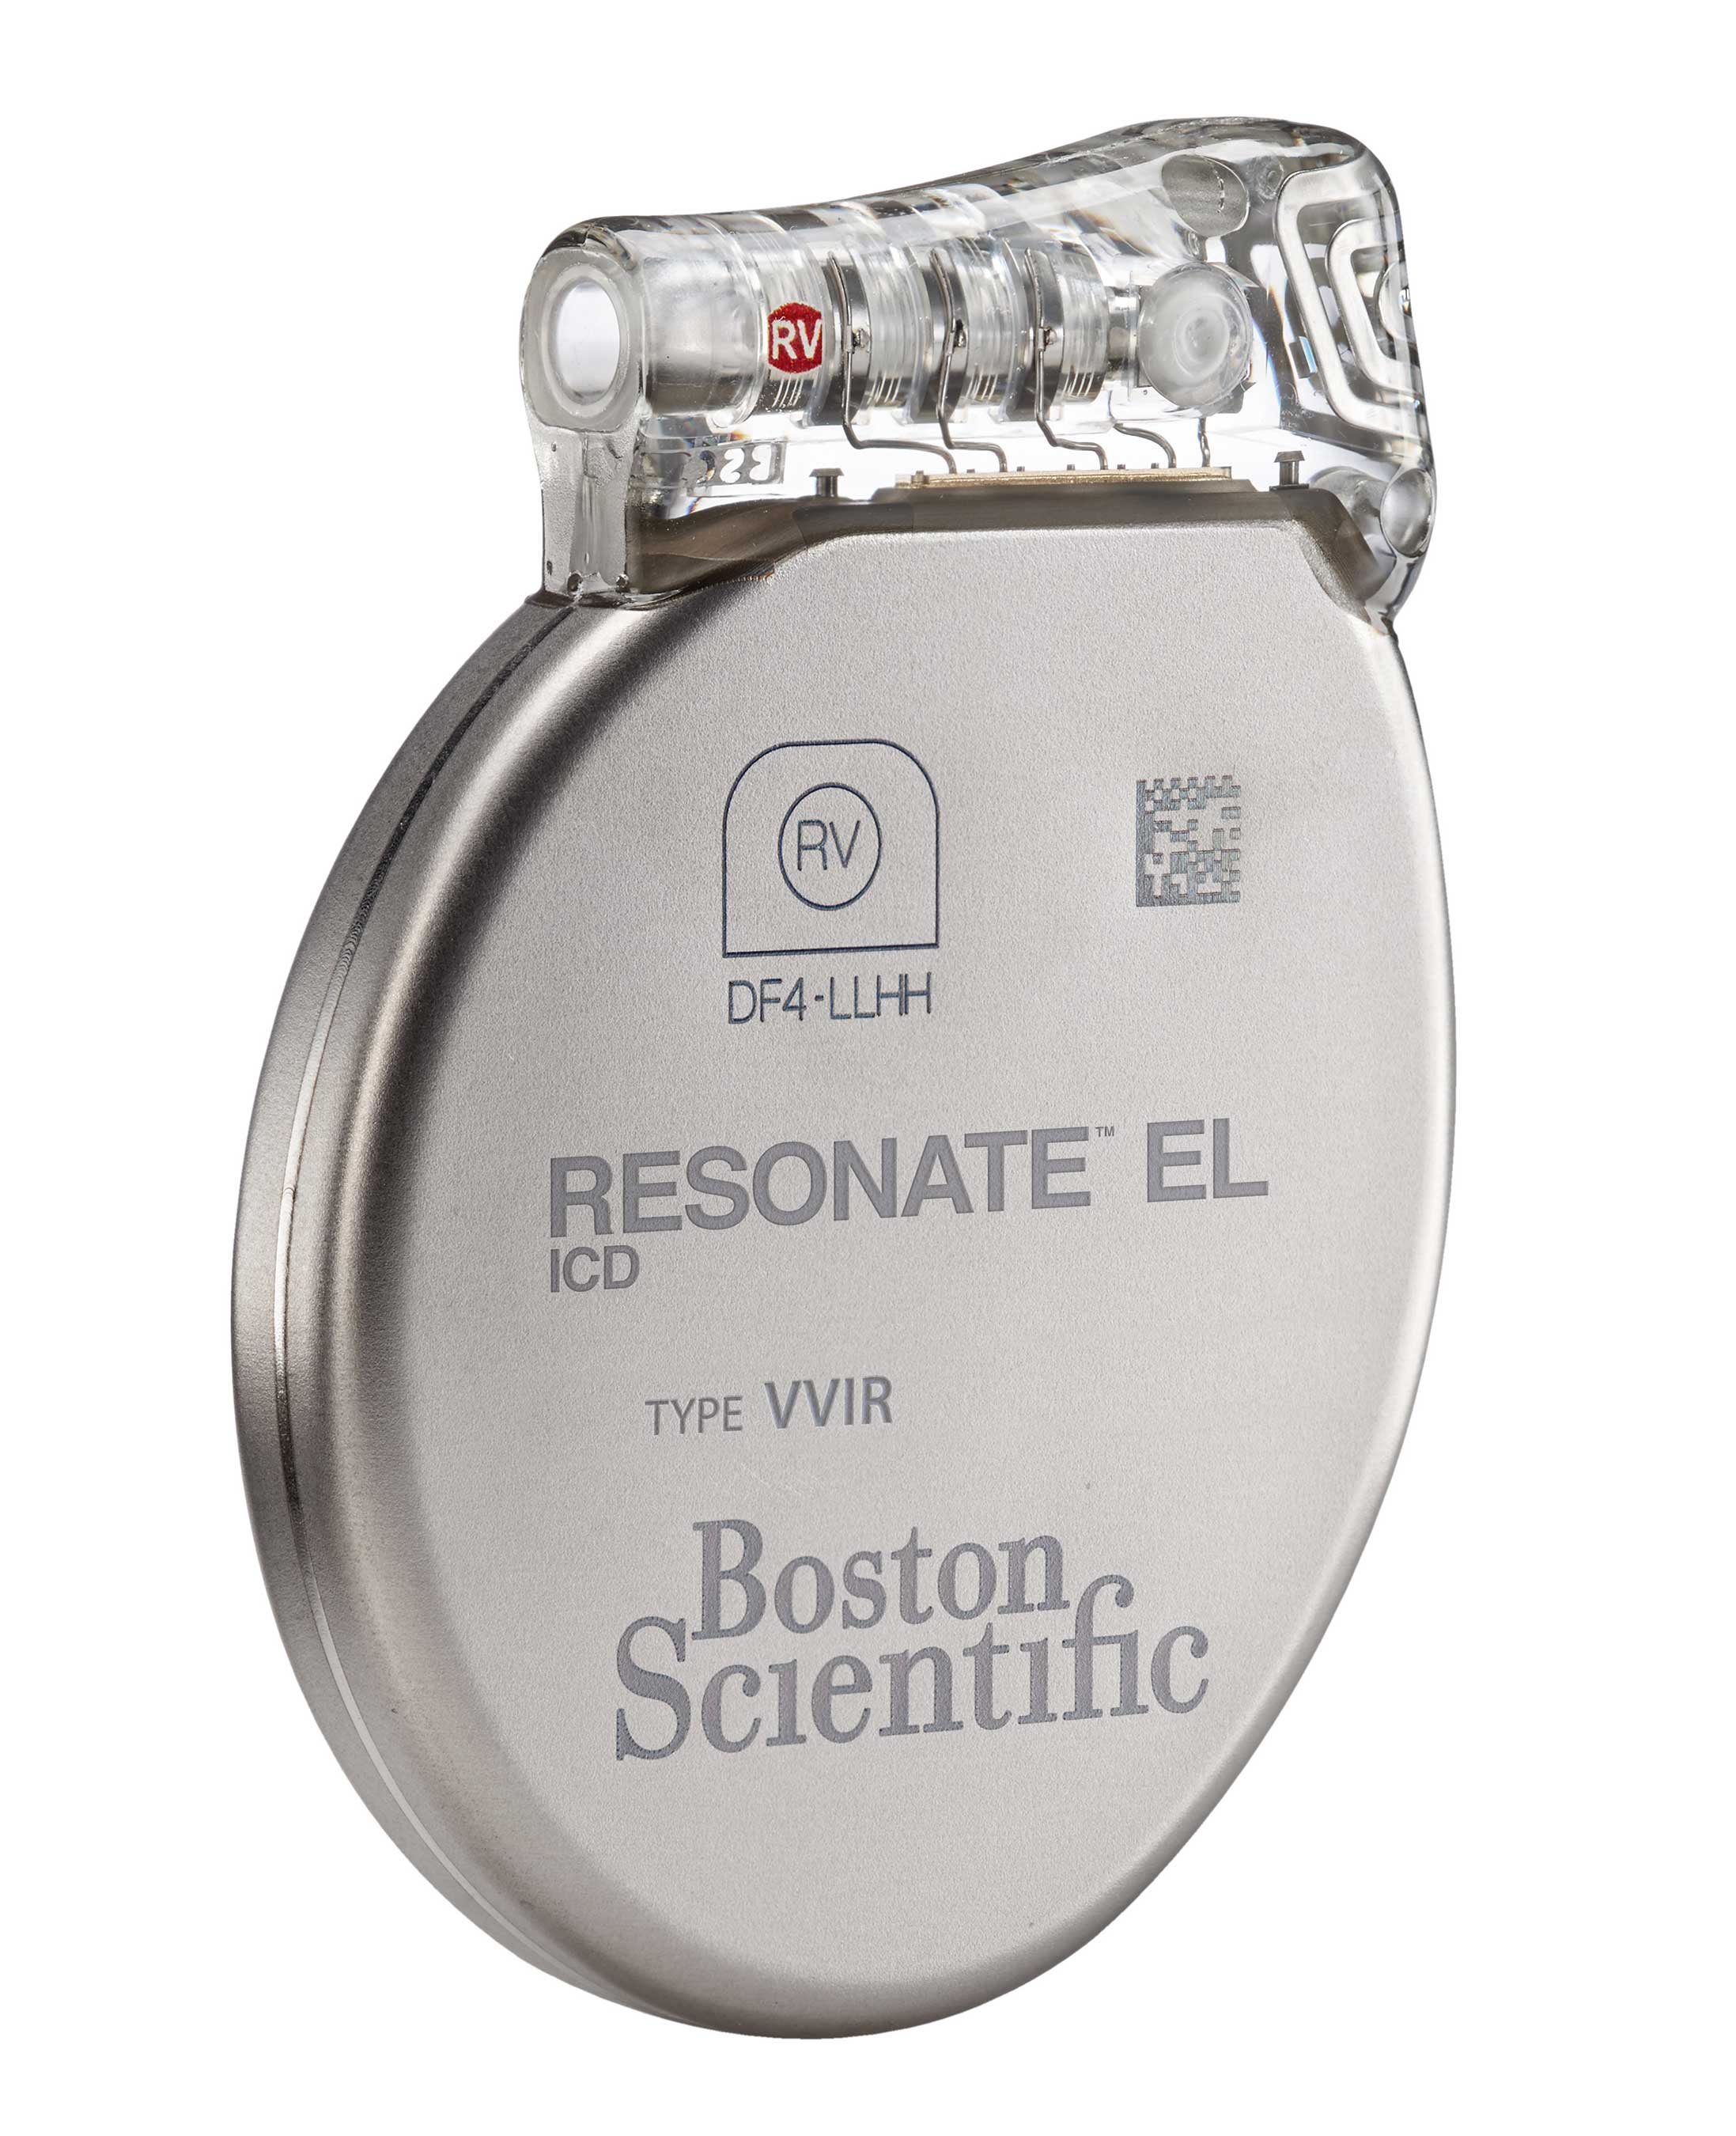 All Resonate devices feature the HeartLogic™ Heart Failure Diagnostic - an alert that has an observed sensitivity of 70% and the ability to provide weeks of advance notice of an impending HF event.